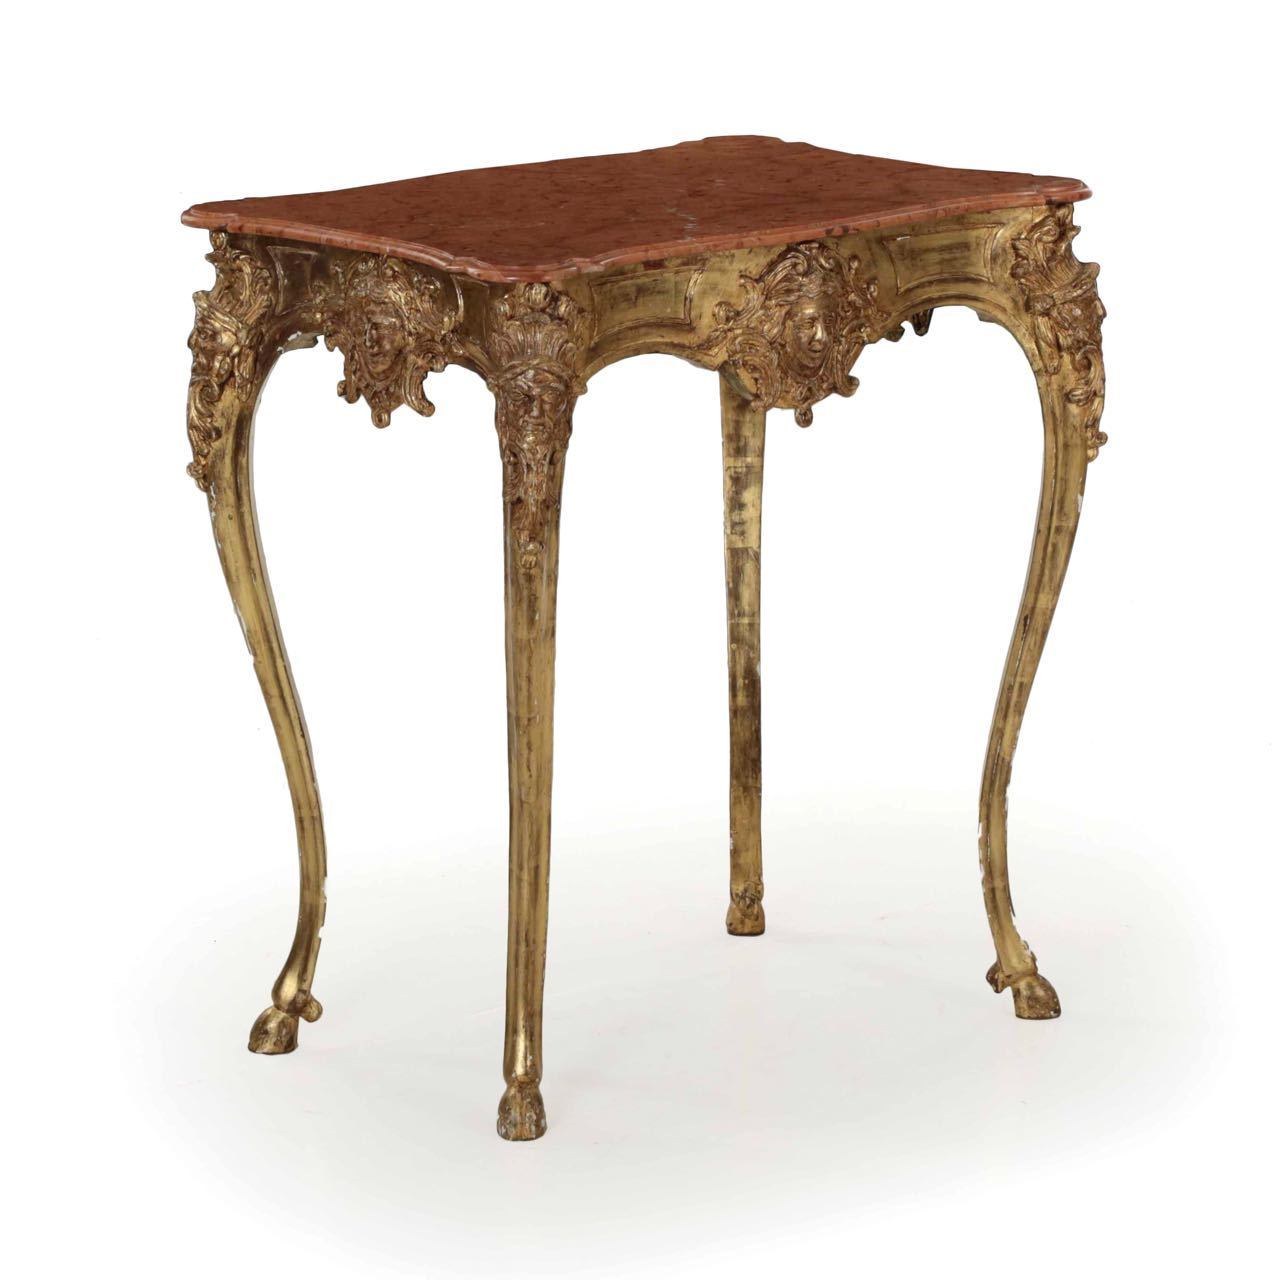 rococo giltwood marble top side table century carved console jules small accent hooved sabots pottery barn trestle dining round bedside cloths coffee set room chairs long narrow